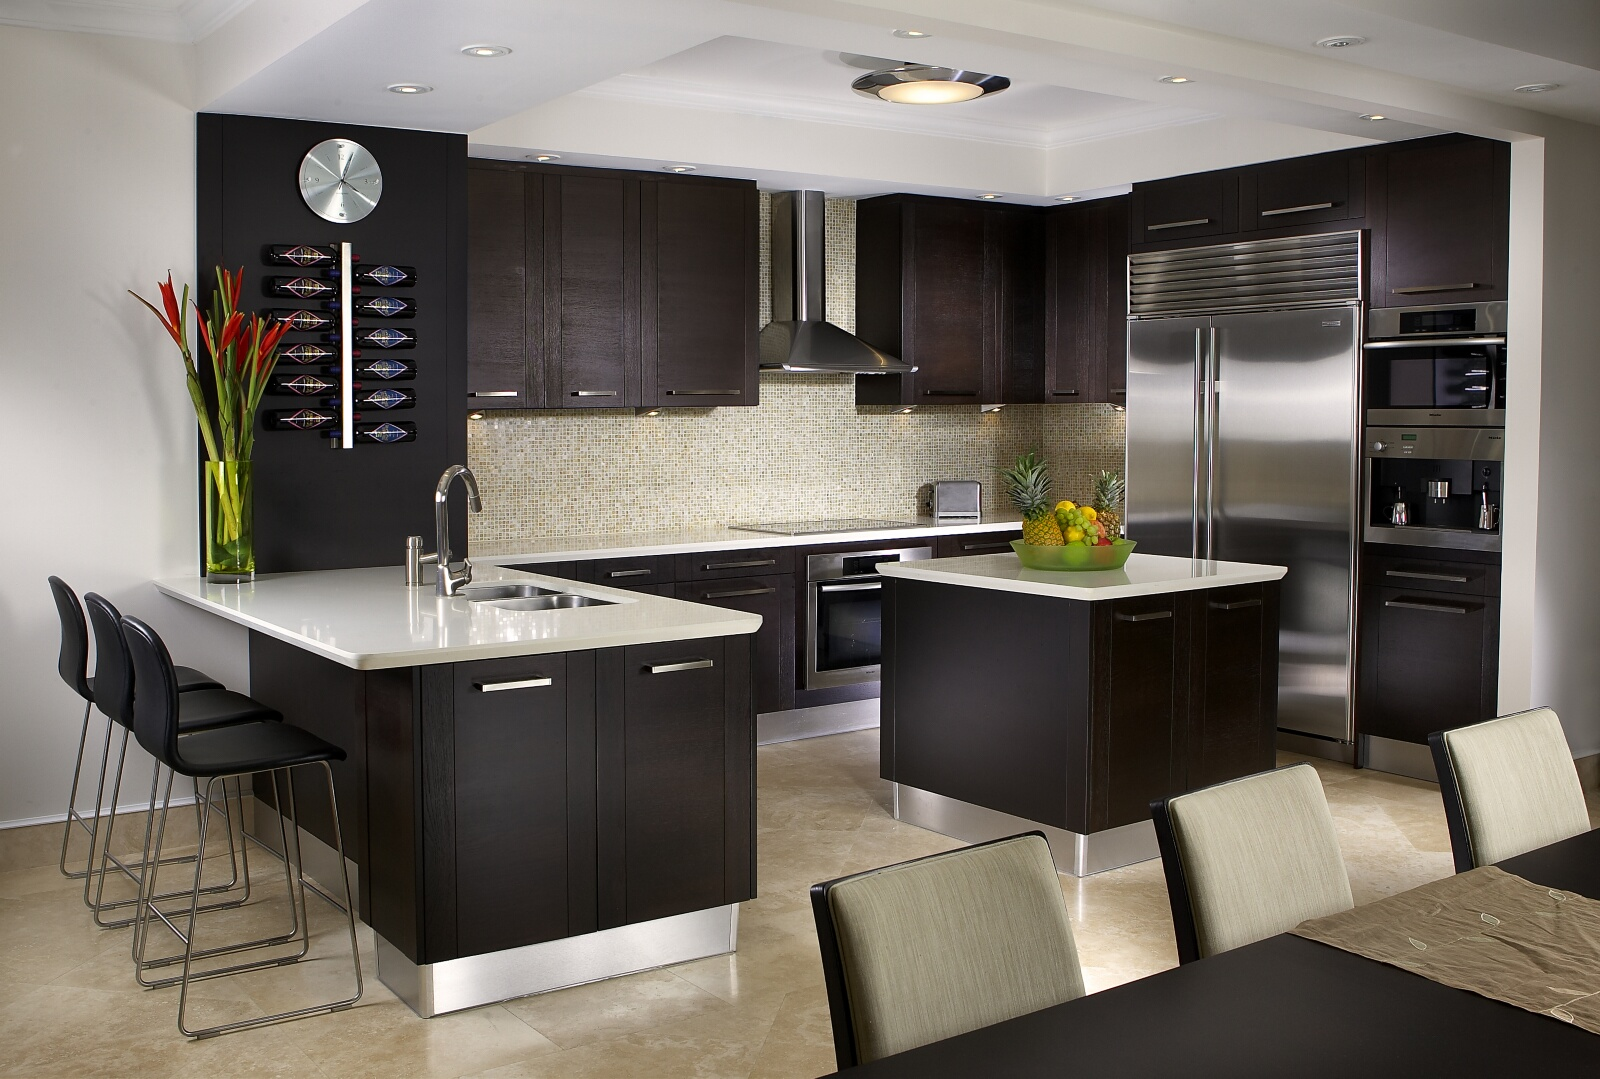 Kitchen interior design services miami florida for Interior decoration for small kitchen